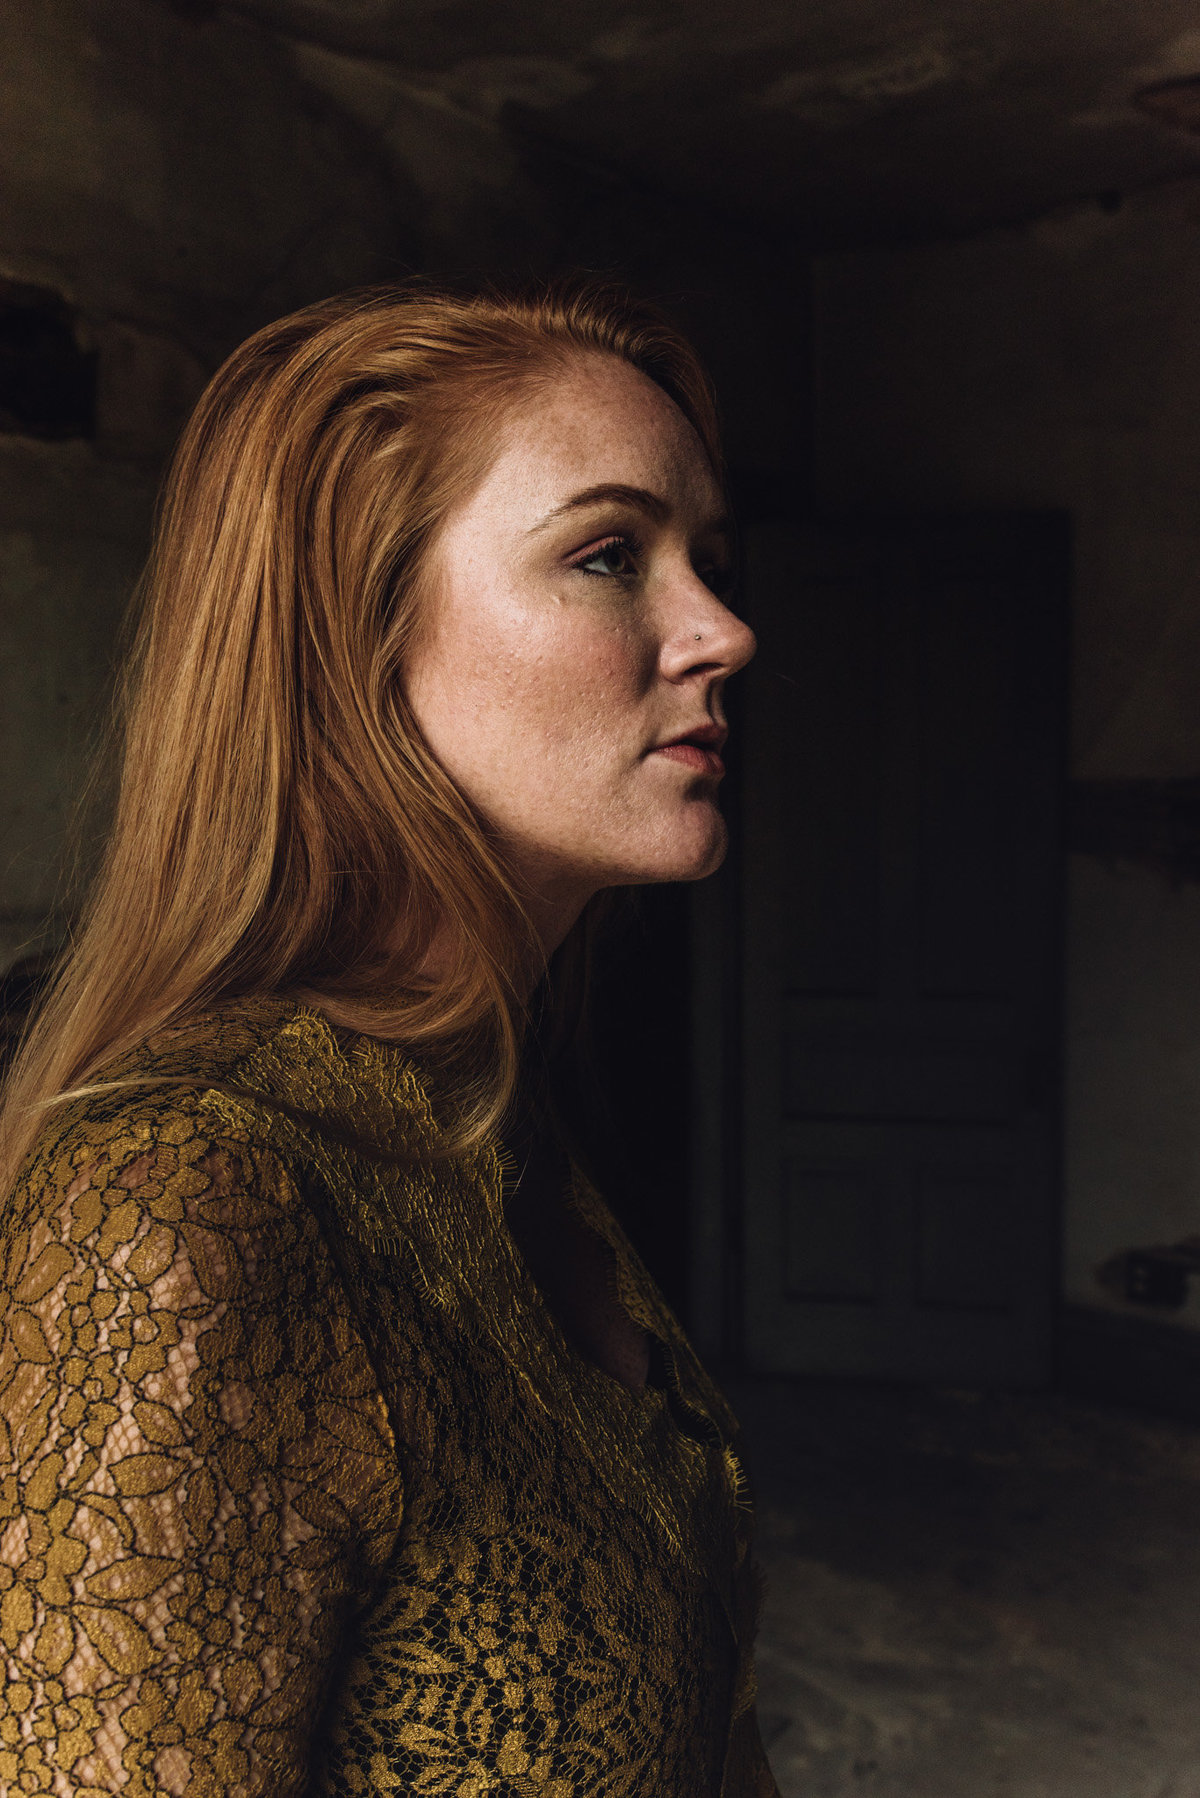 red headed woman in profile